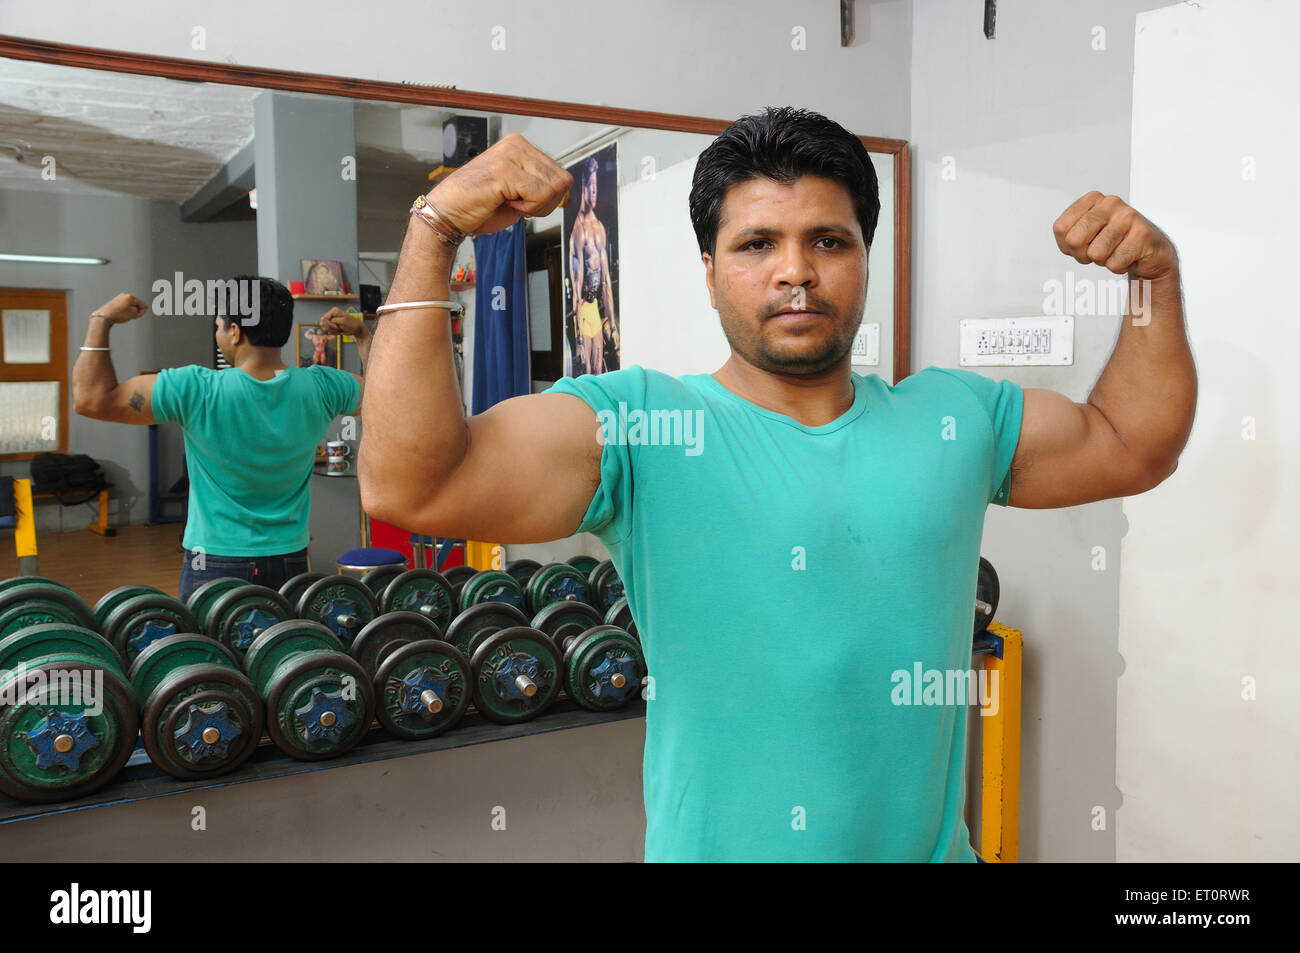 Man showing biceps in fitness centre MR#786 - Stock Image